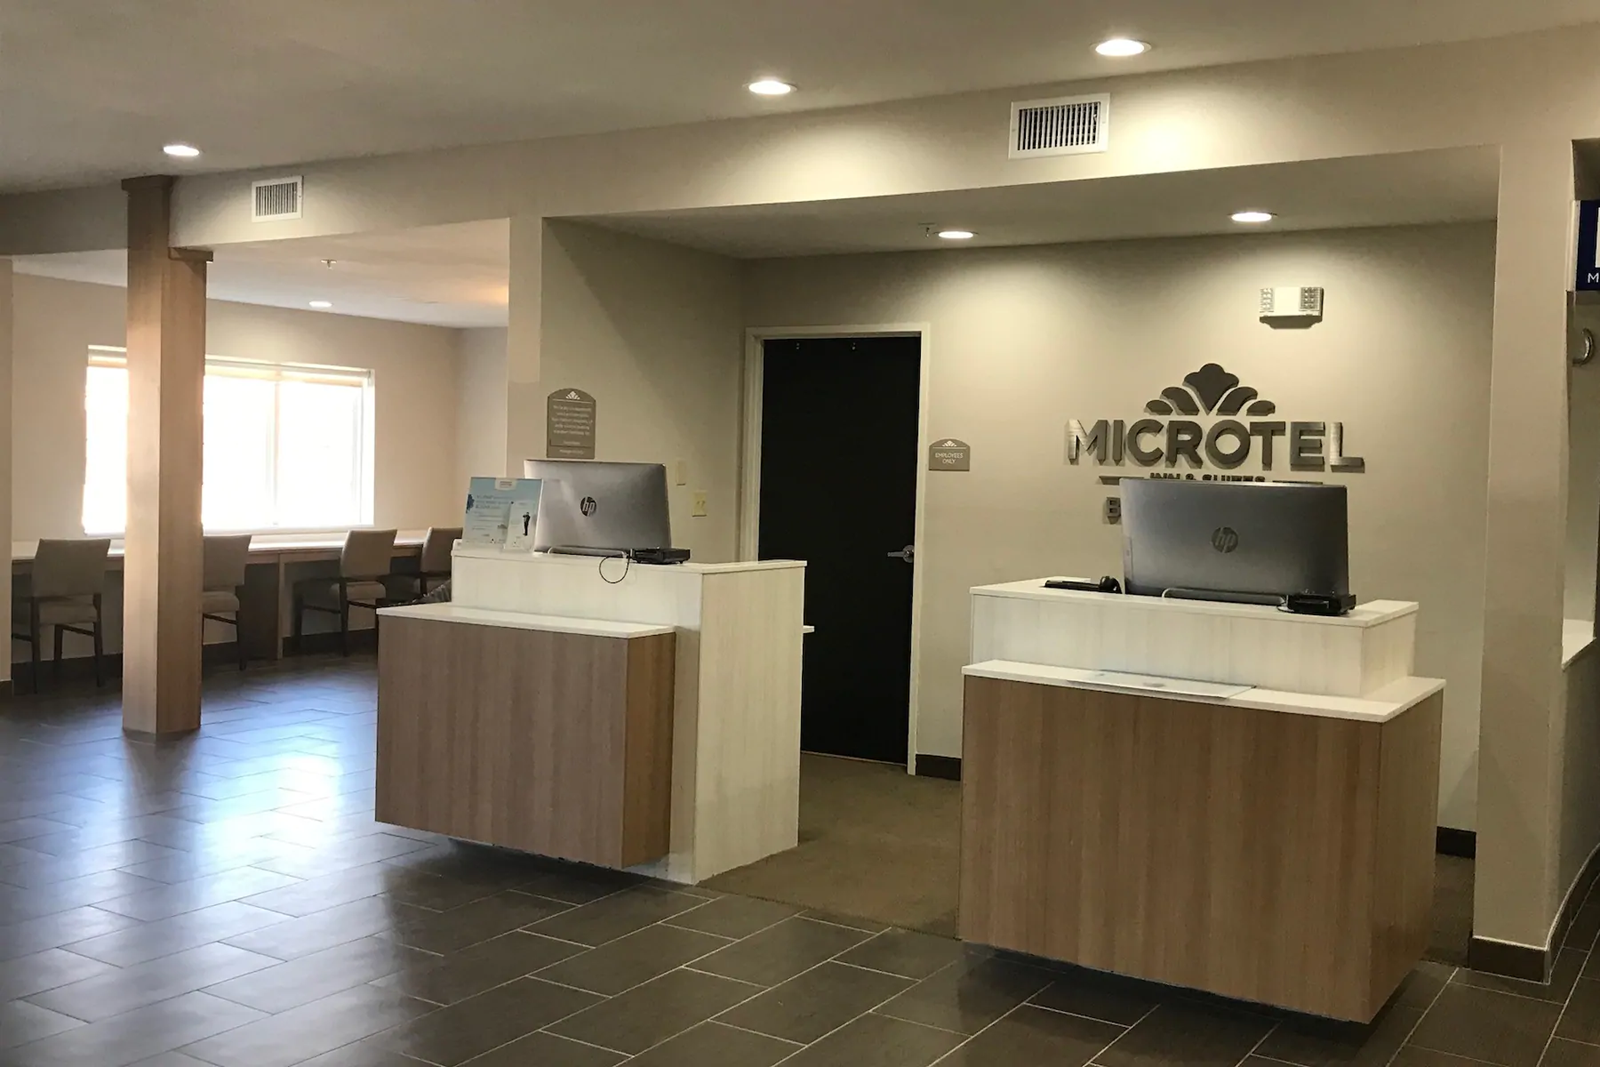 Microtel- College Station